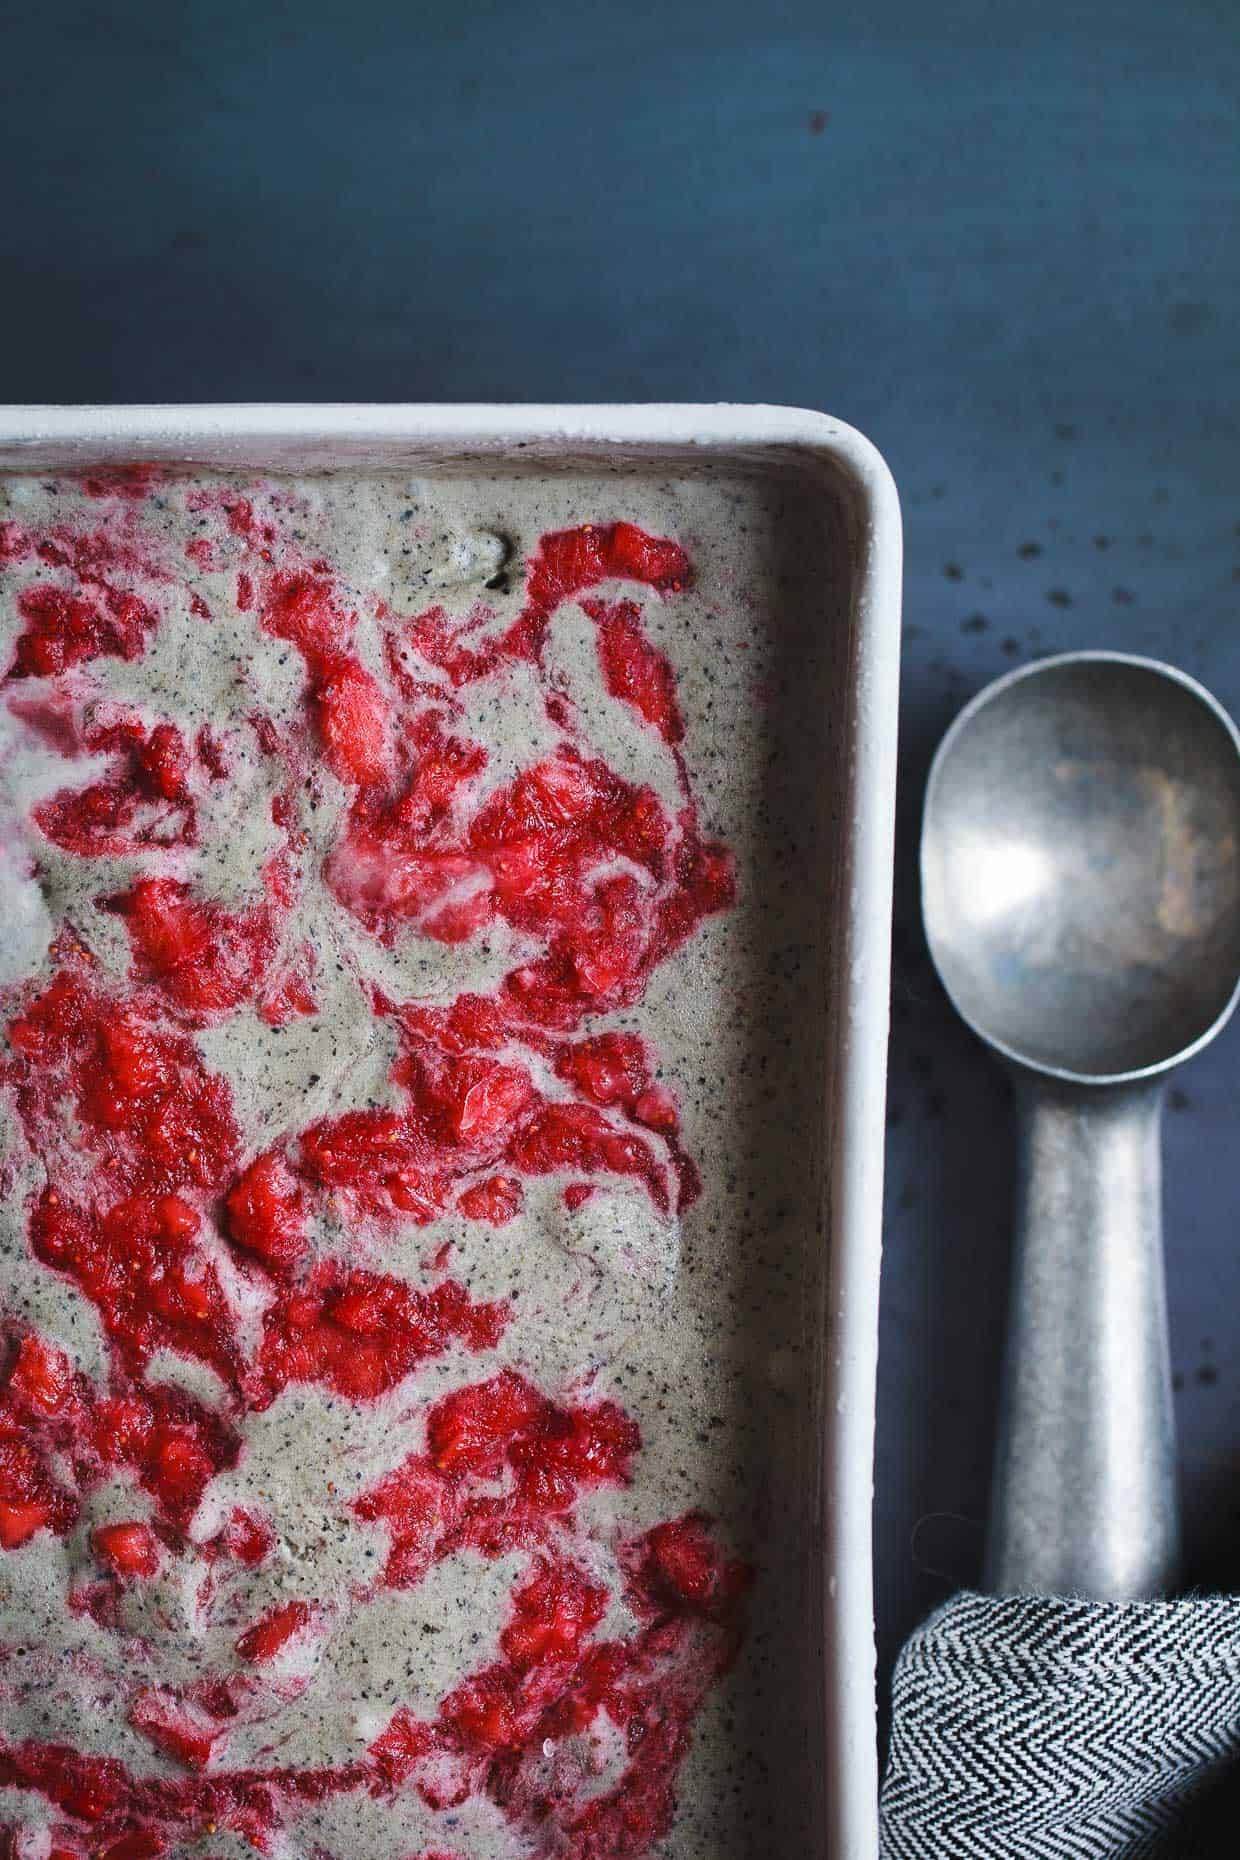 Vegan Coconut Black Sesame-Ice Cream with Strawberry Swirl